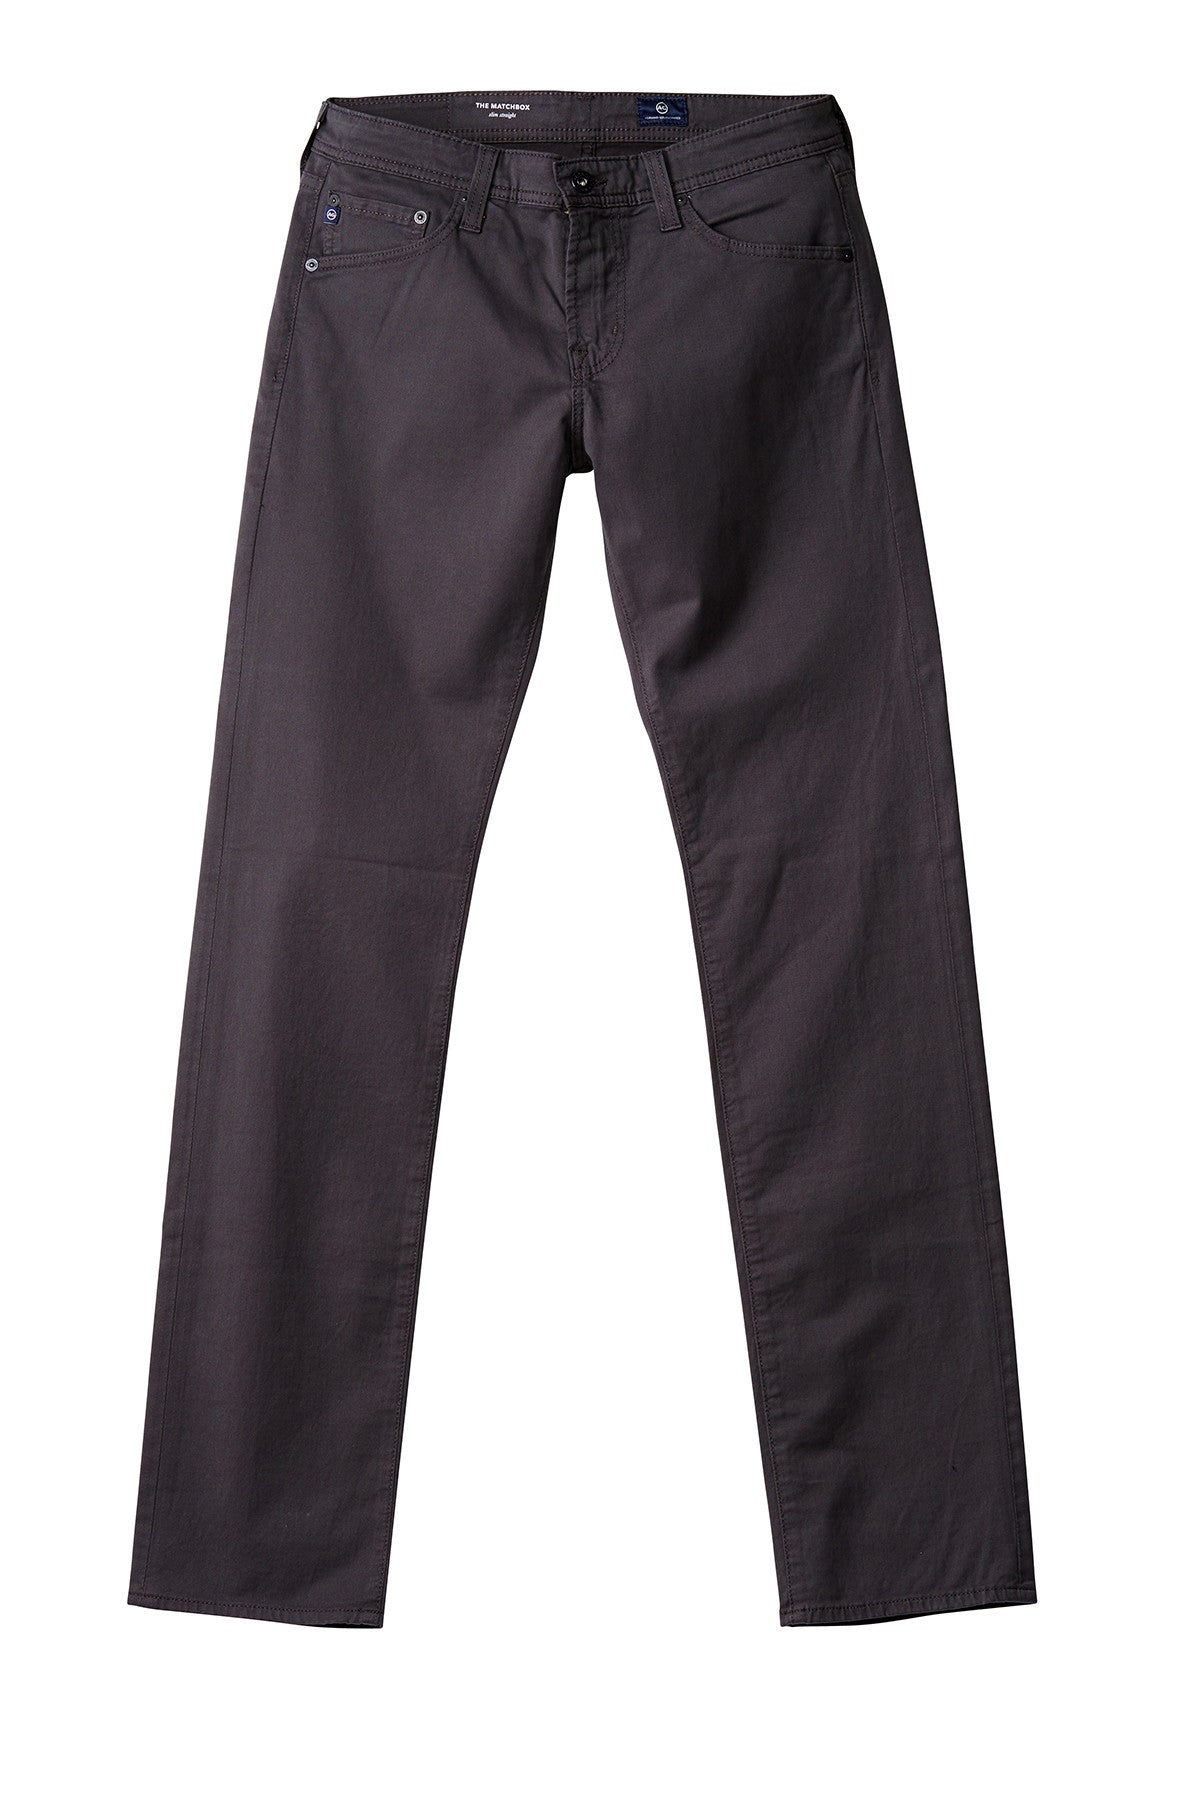 AG 'Matchbox' Slim Fit Pants in Dark Rock